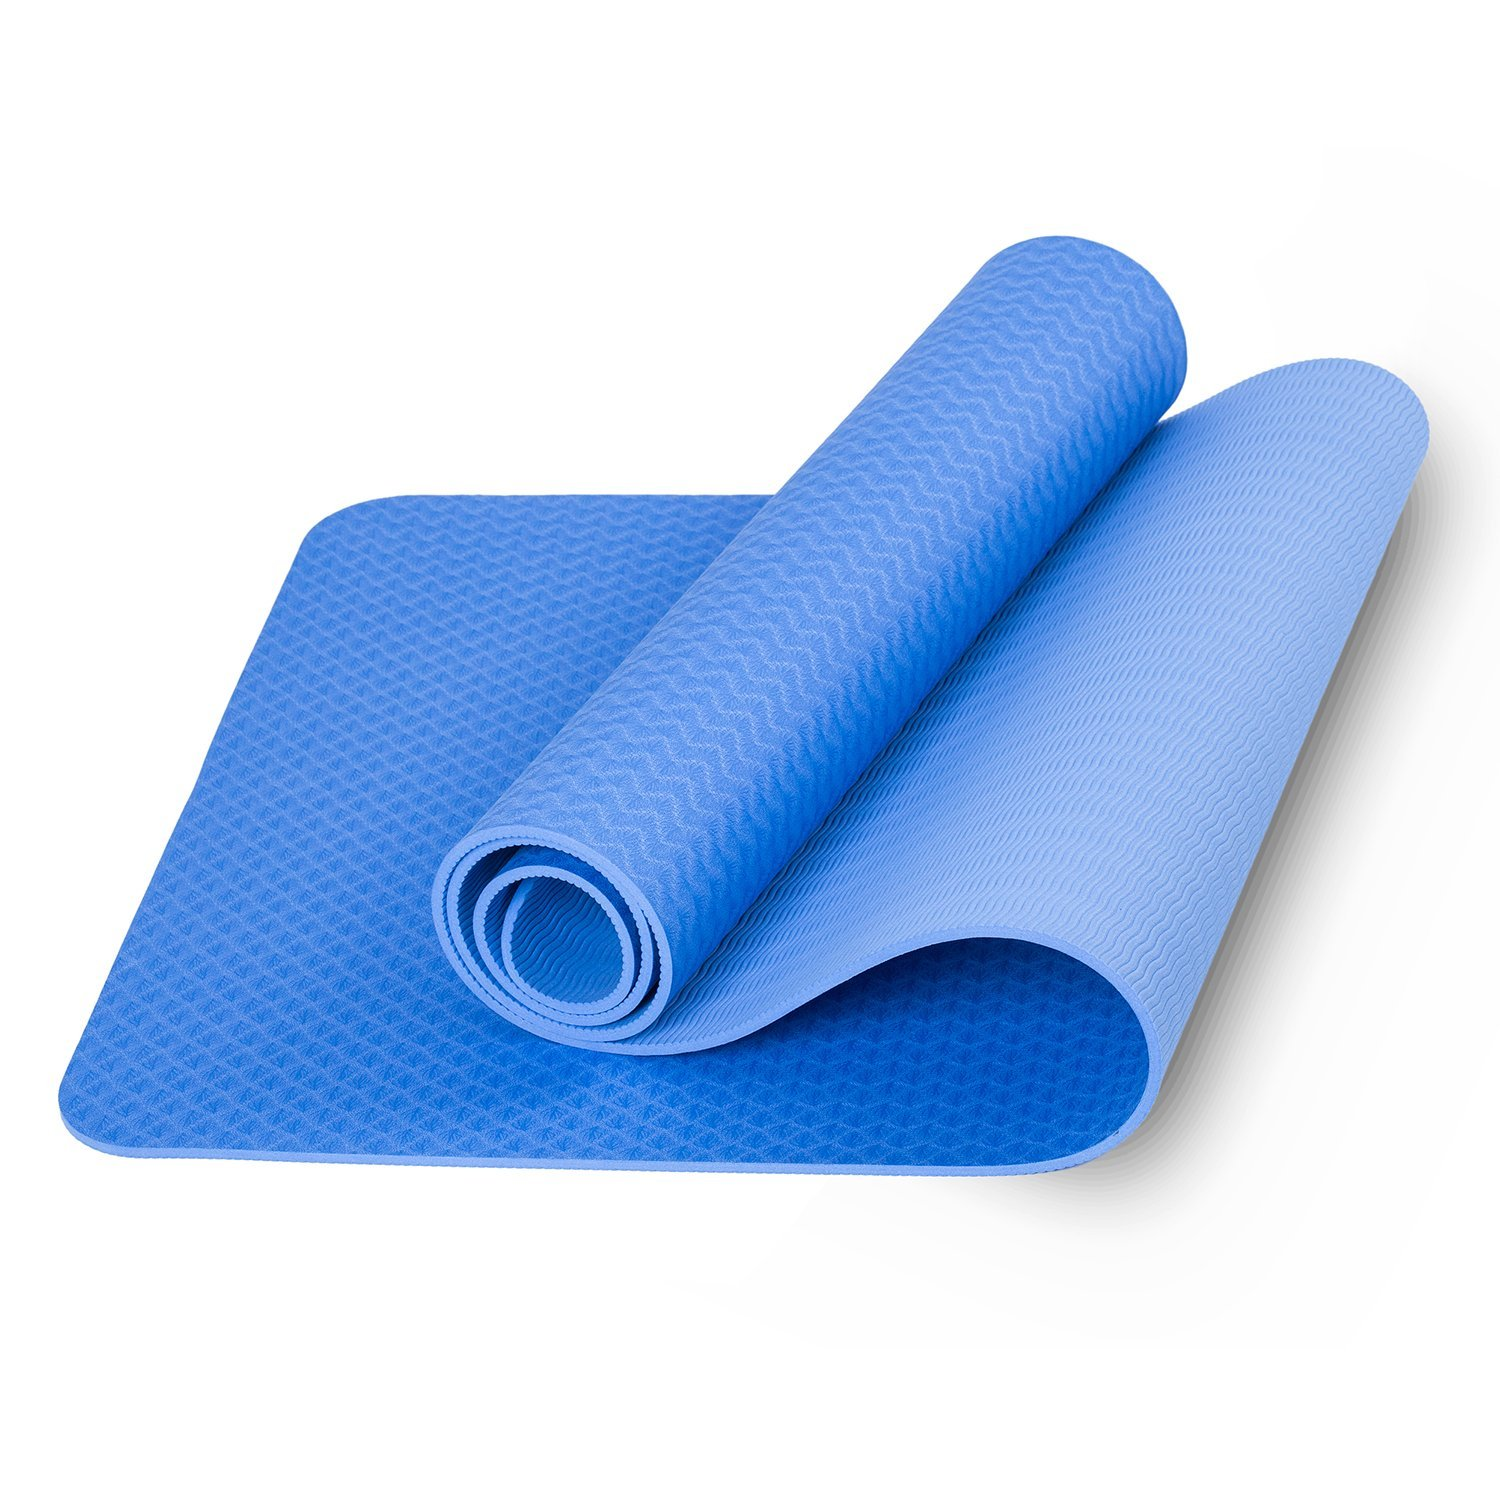 Ecofriendly Tpe Material Yoga Mat 72quotx24quotx6mm Thickness Matras 8mm Rubber Eco Anti Slip Bag Limited Edition